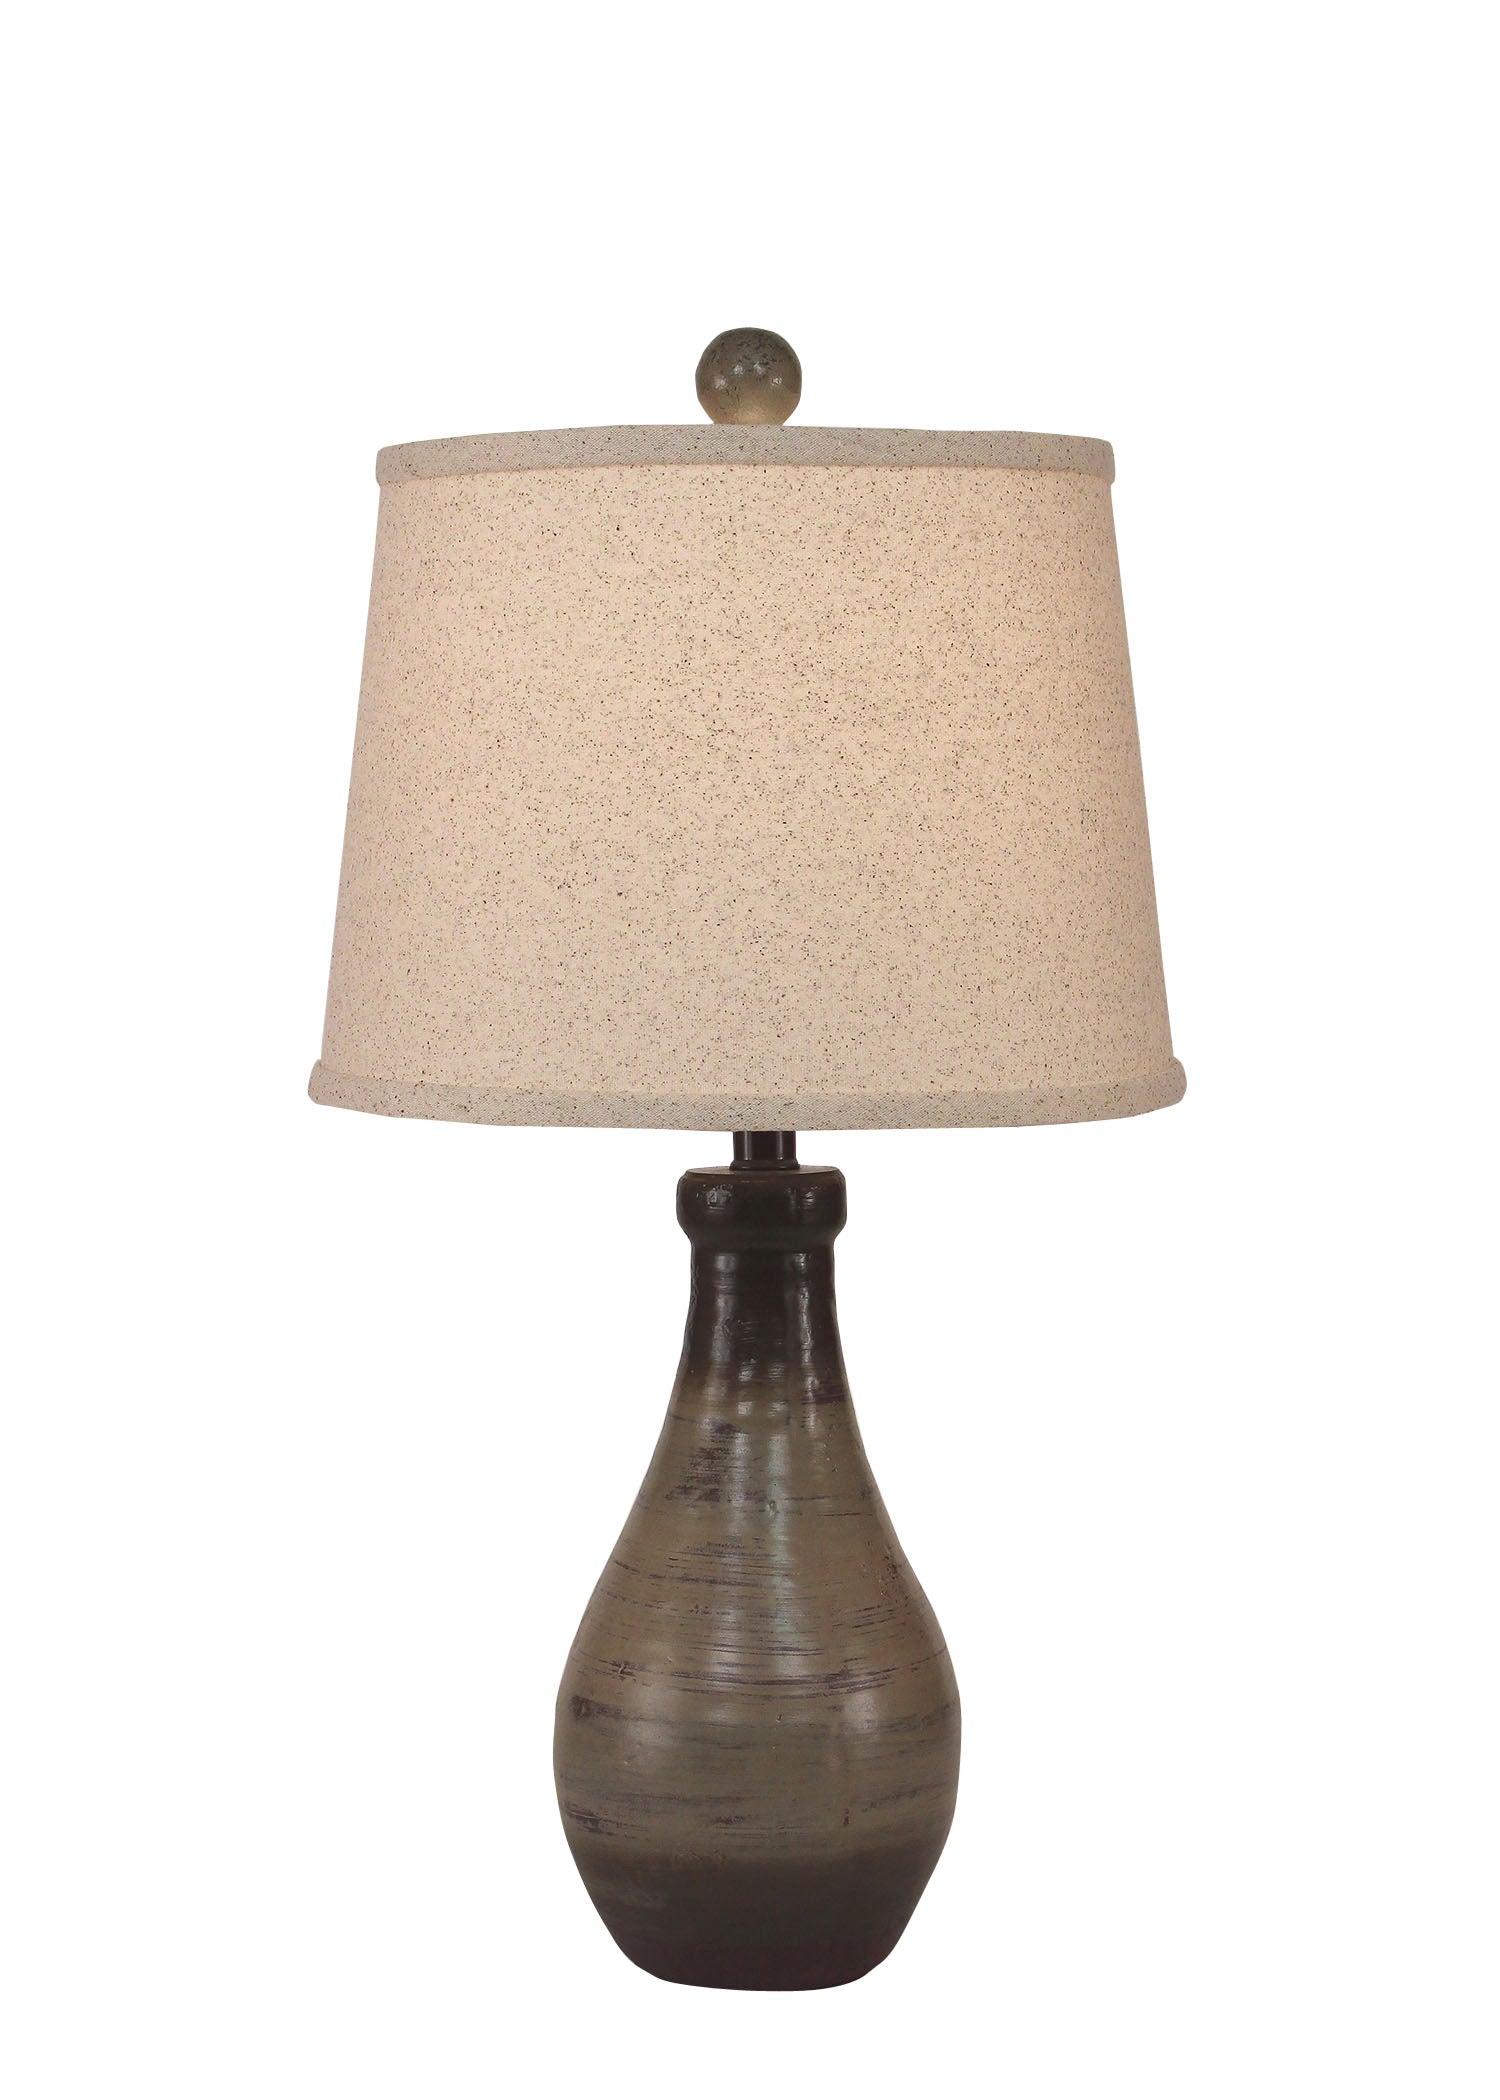 Earthstone Small Tapered Clay Pot Accent Lamp - Coast Lamp Shop